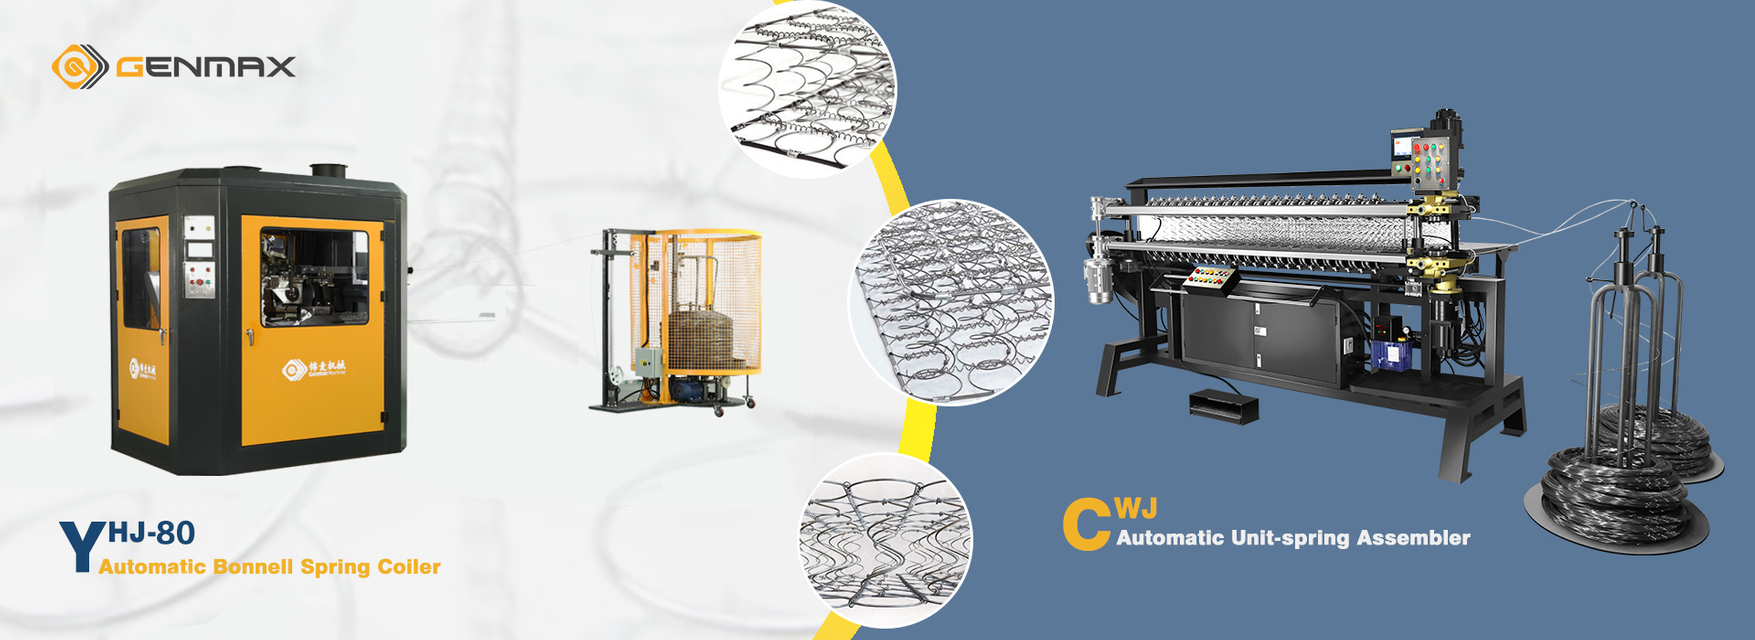 GENMAX mattress spring machine banner